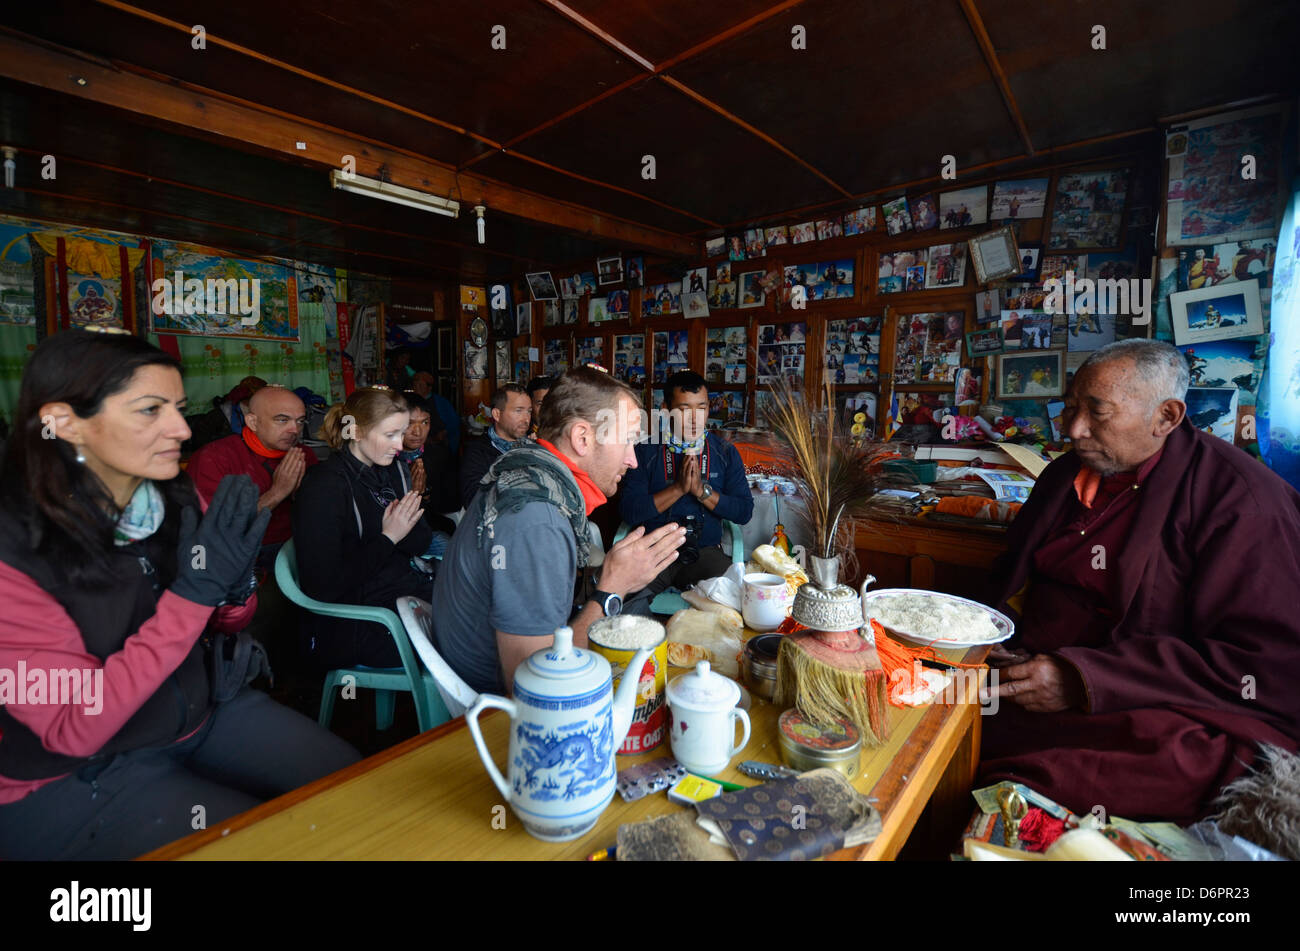 expedition ceremony with a lama Solu Khumbu Everest Region, Sagarmatha National Park, Himalayas, Nepal, Asia - Stock Image